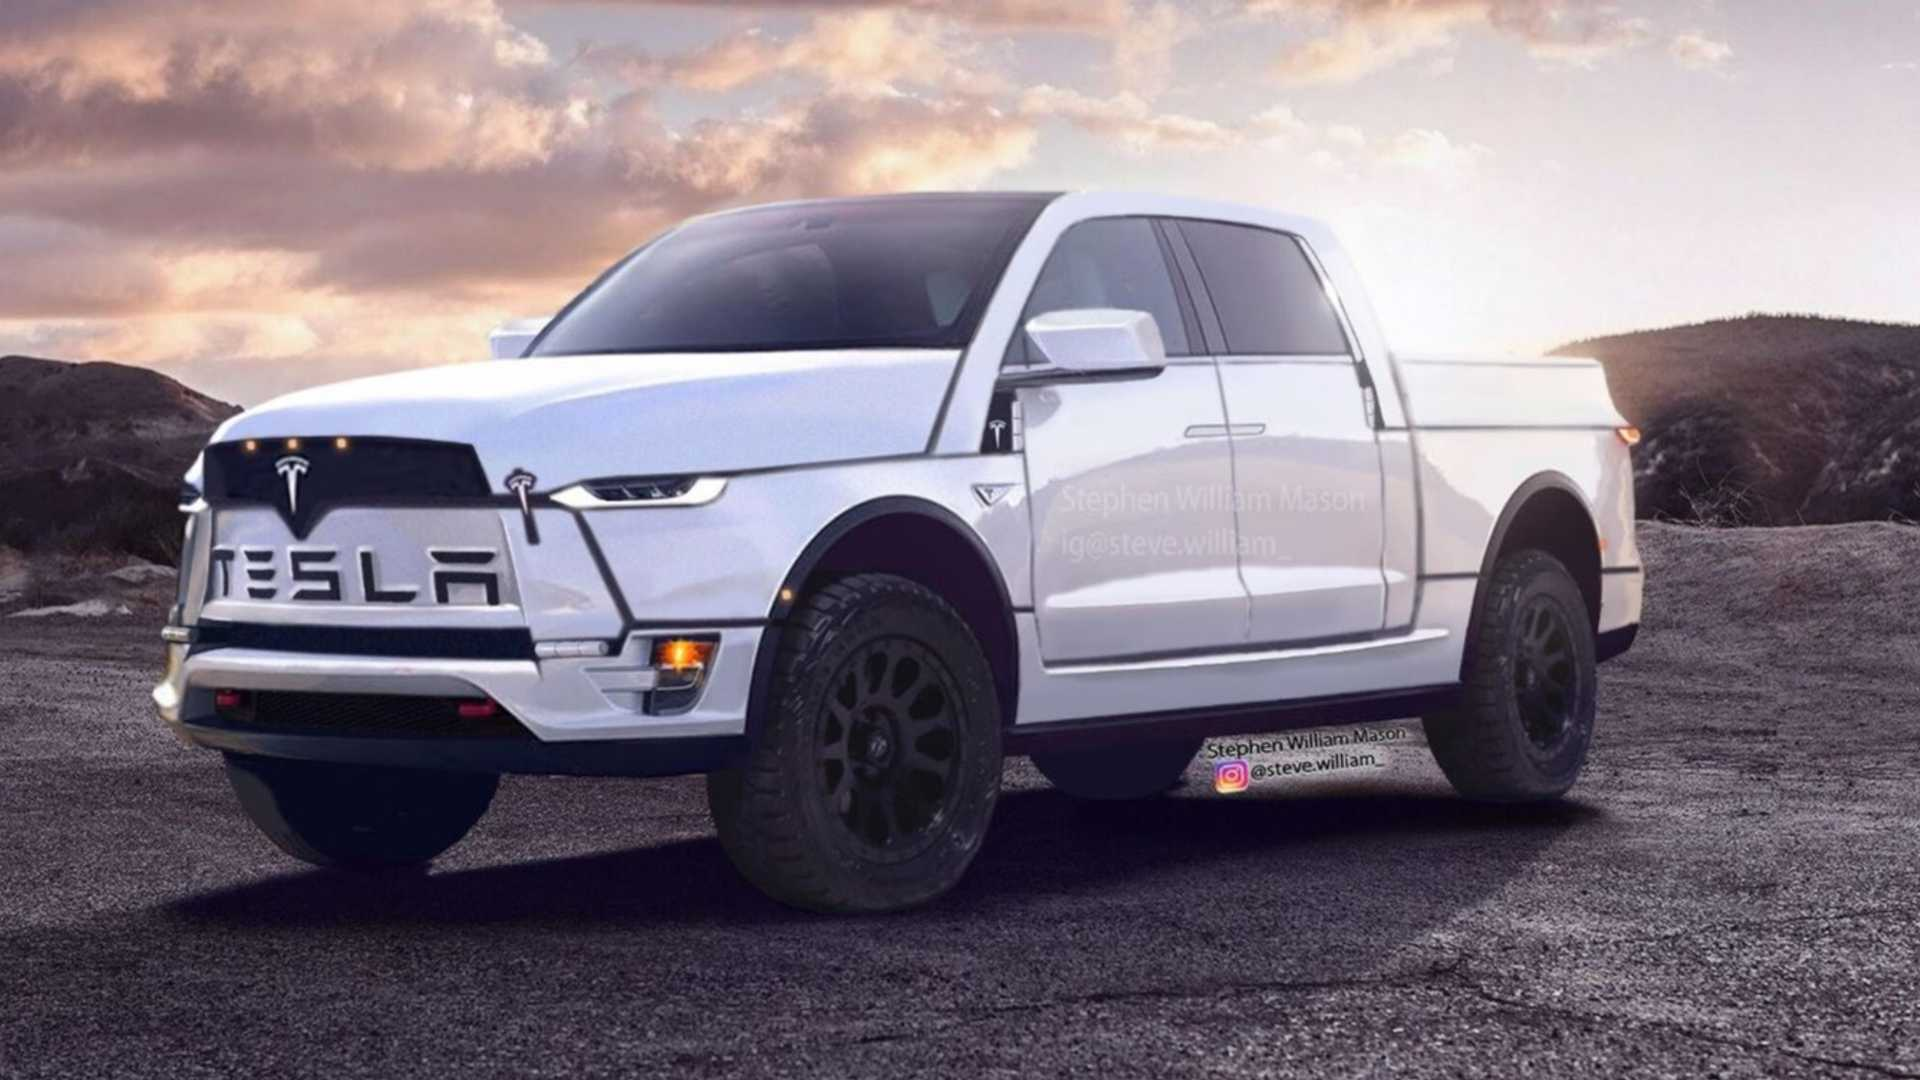 Electric Pickup Trucks: Tesla And Rivian Top This Week's Trucking News